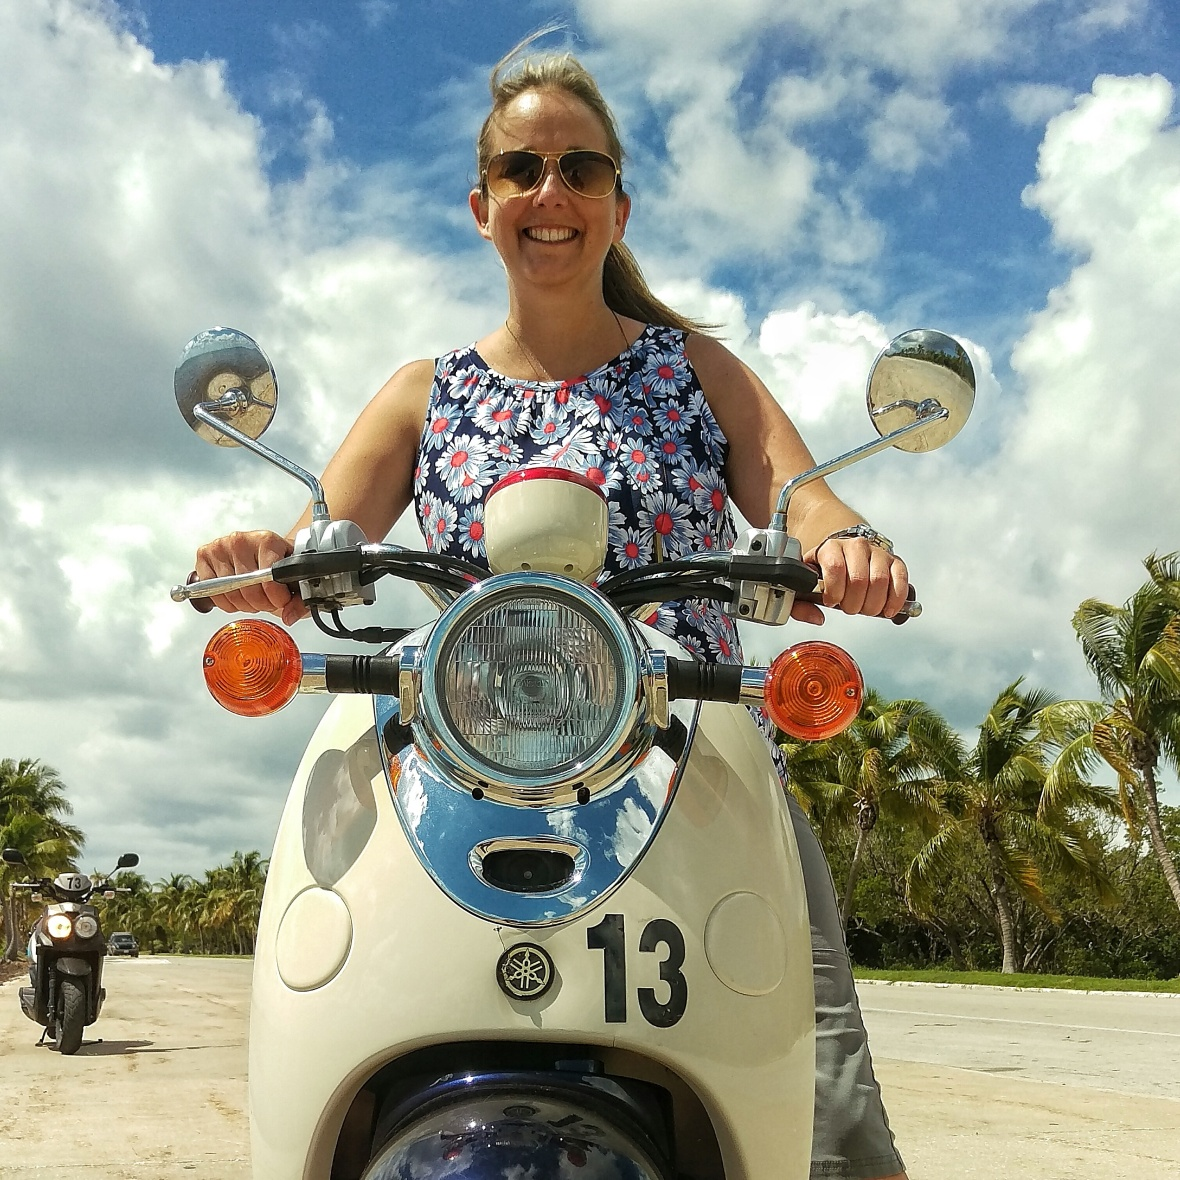 Hydro Thunder Scooter Rentals in Key West Florida